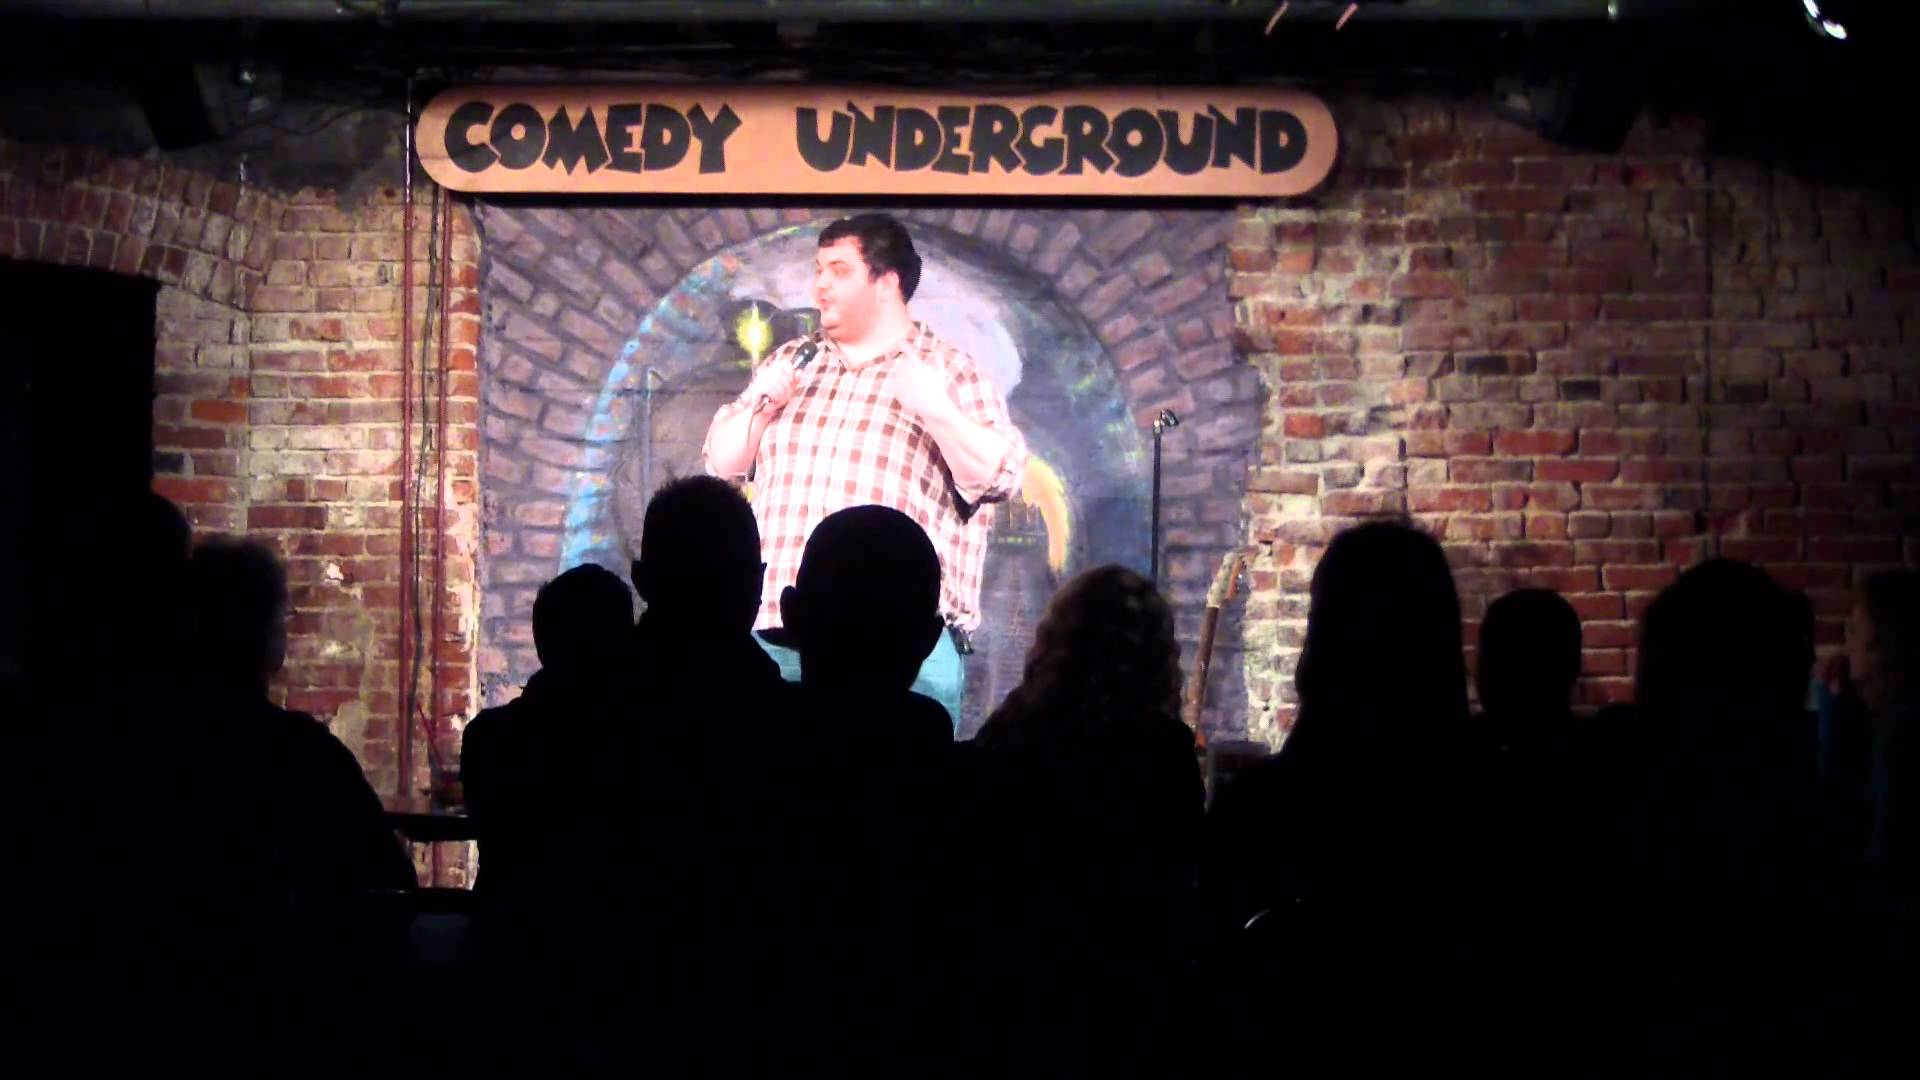 late-night-date-ideas-comedy-underground